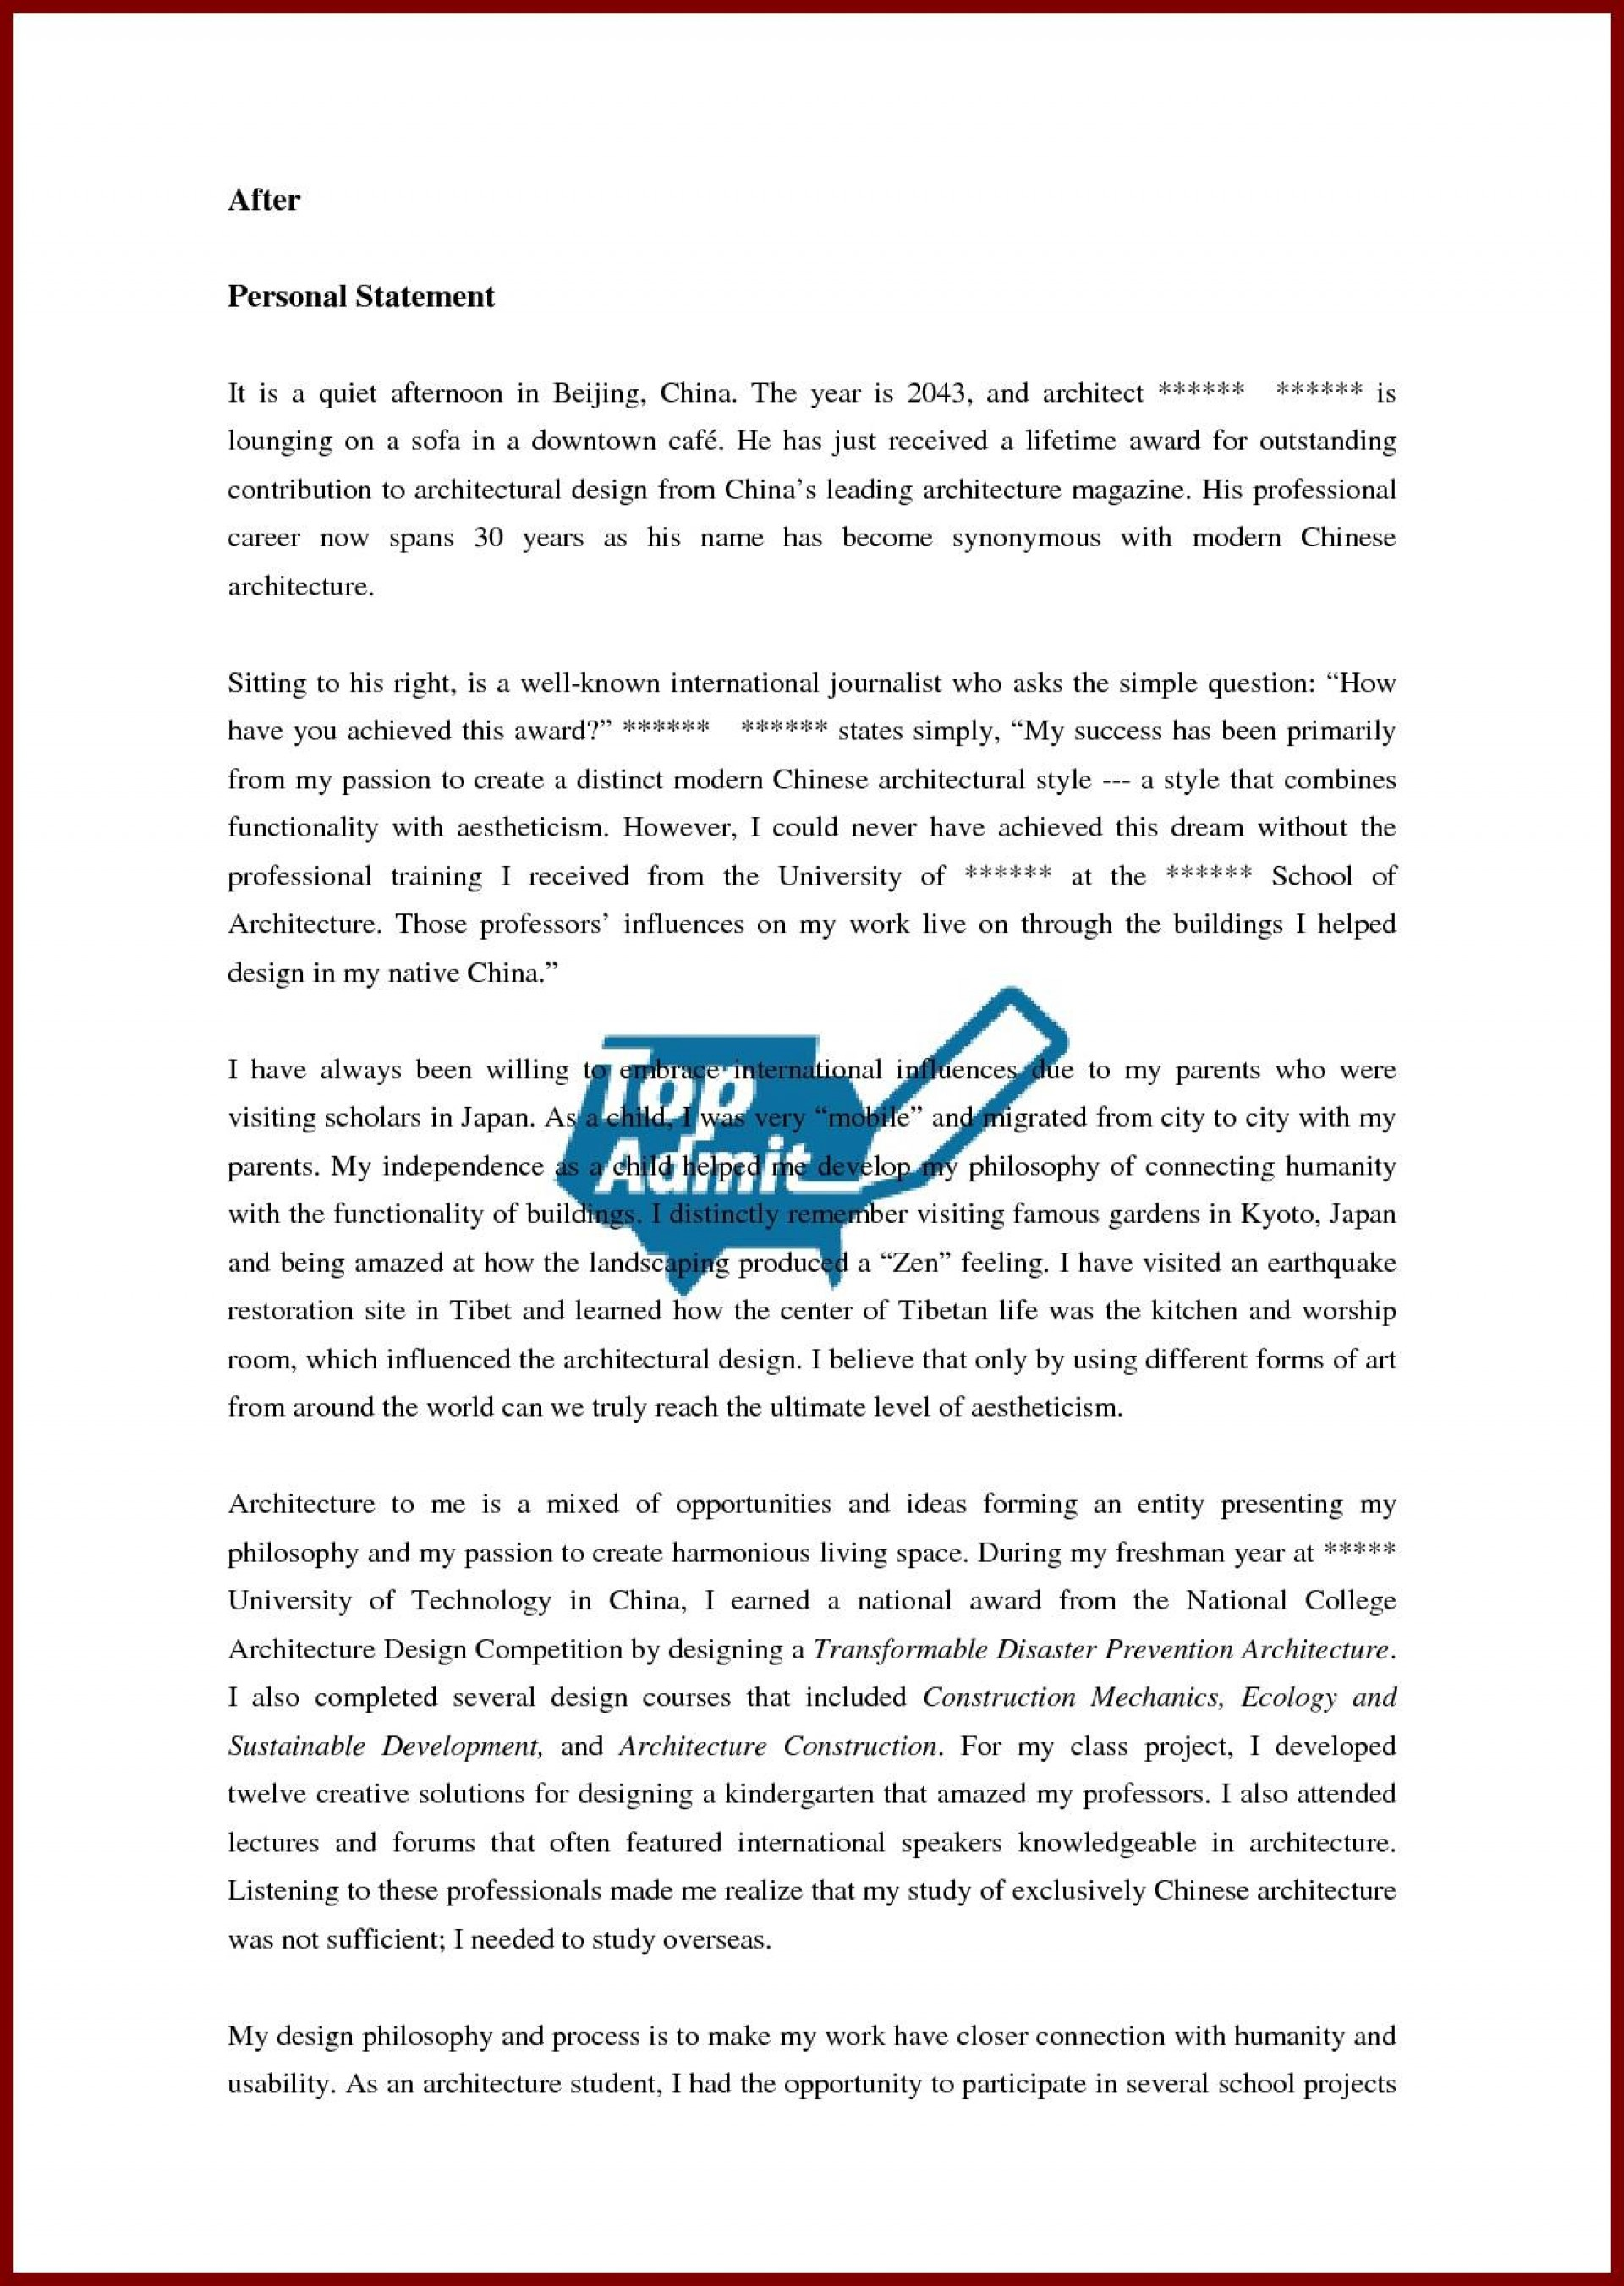 006 Pharmacy Schoolay Examples Usc Supplemental Application Help Entrance Sample Letter For Nursing Admission Zwjgmmd Personal Statement Image Interview Prompts Tips Questions Prompt Sensational Essay Engineering 2017 1920